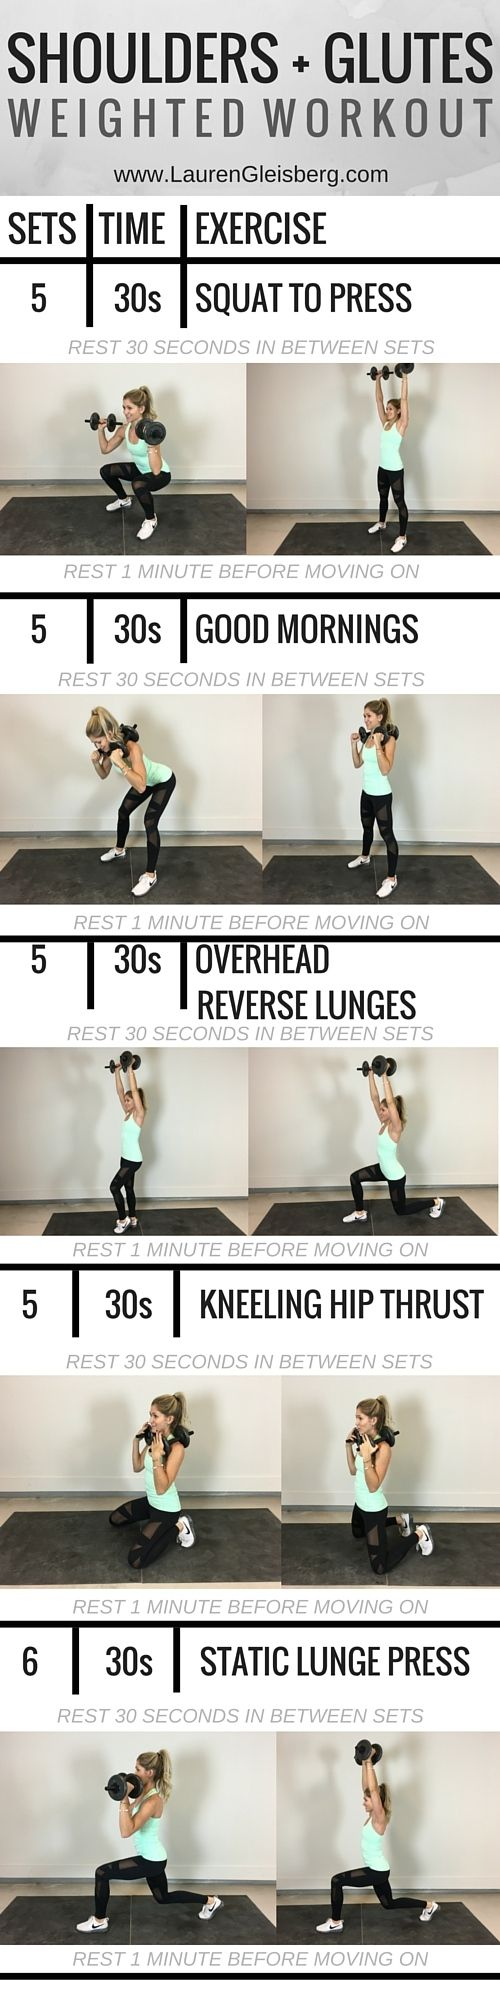 Work It Out Shoulders & Glutes